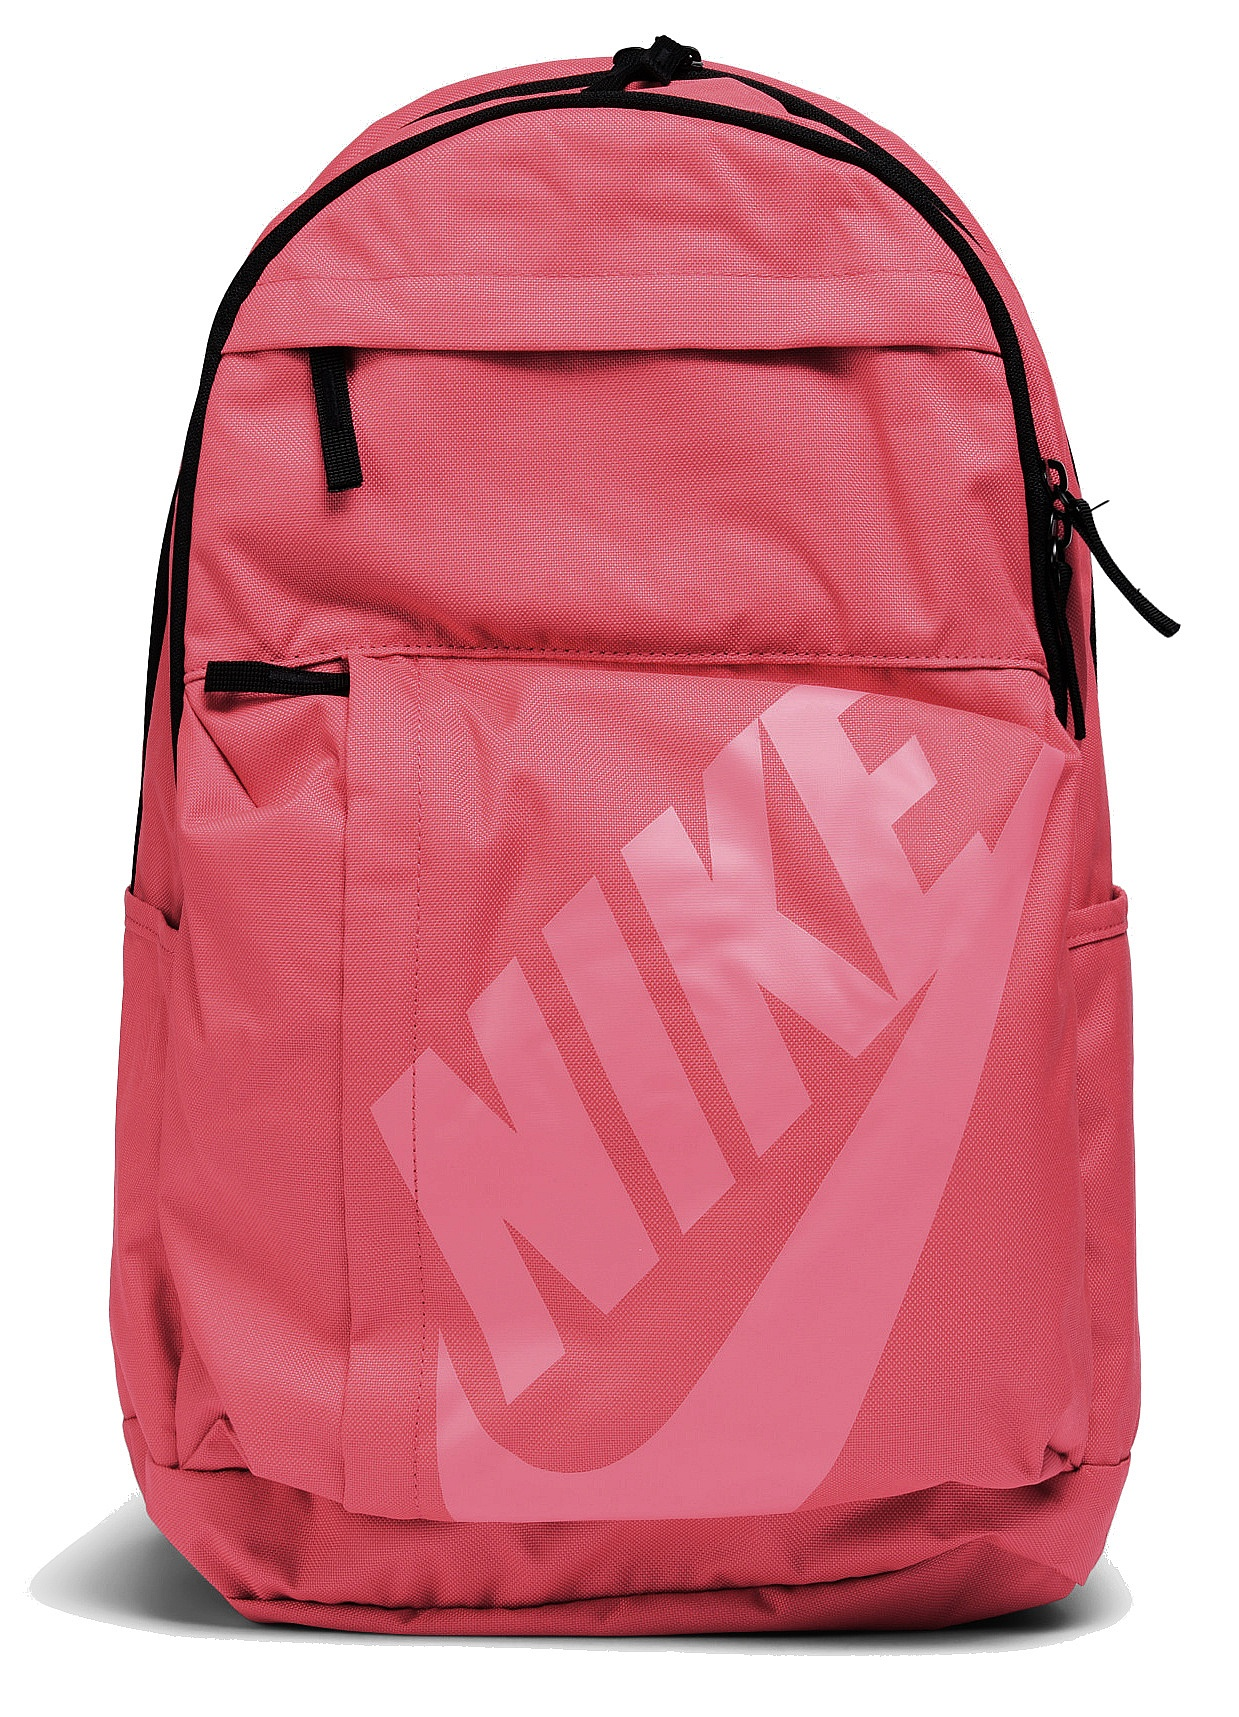 707b38b16e1 backpack Nike Elemental - 654 Tropical Pink Black Sea Coral - Snowboard  shop, skateshop - snowboard-online.eu